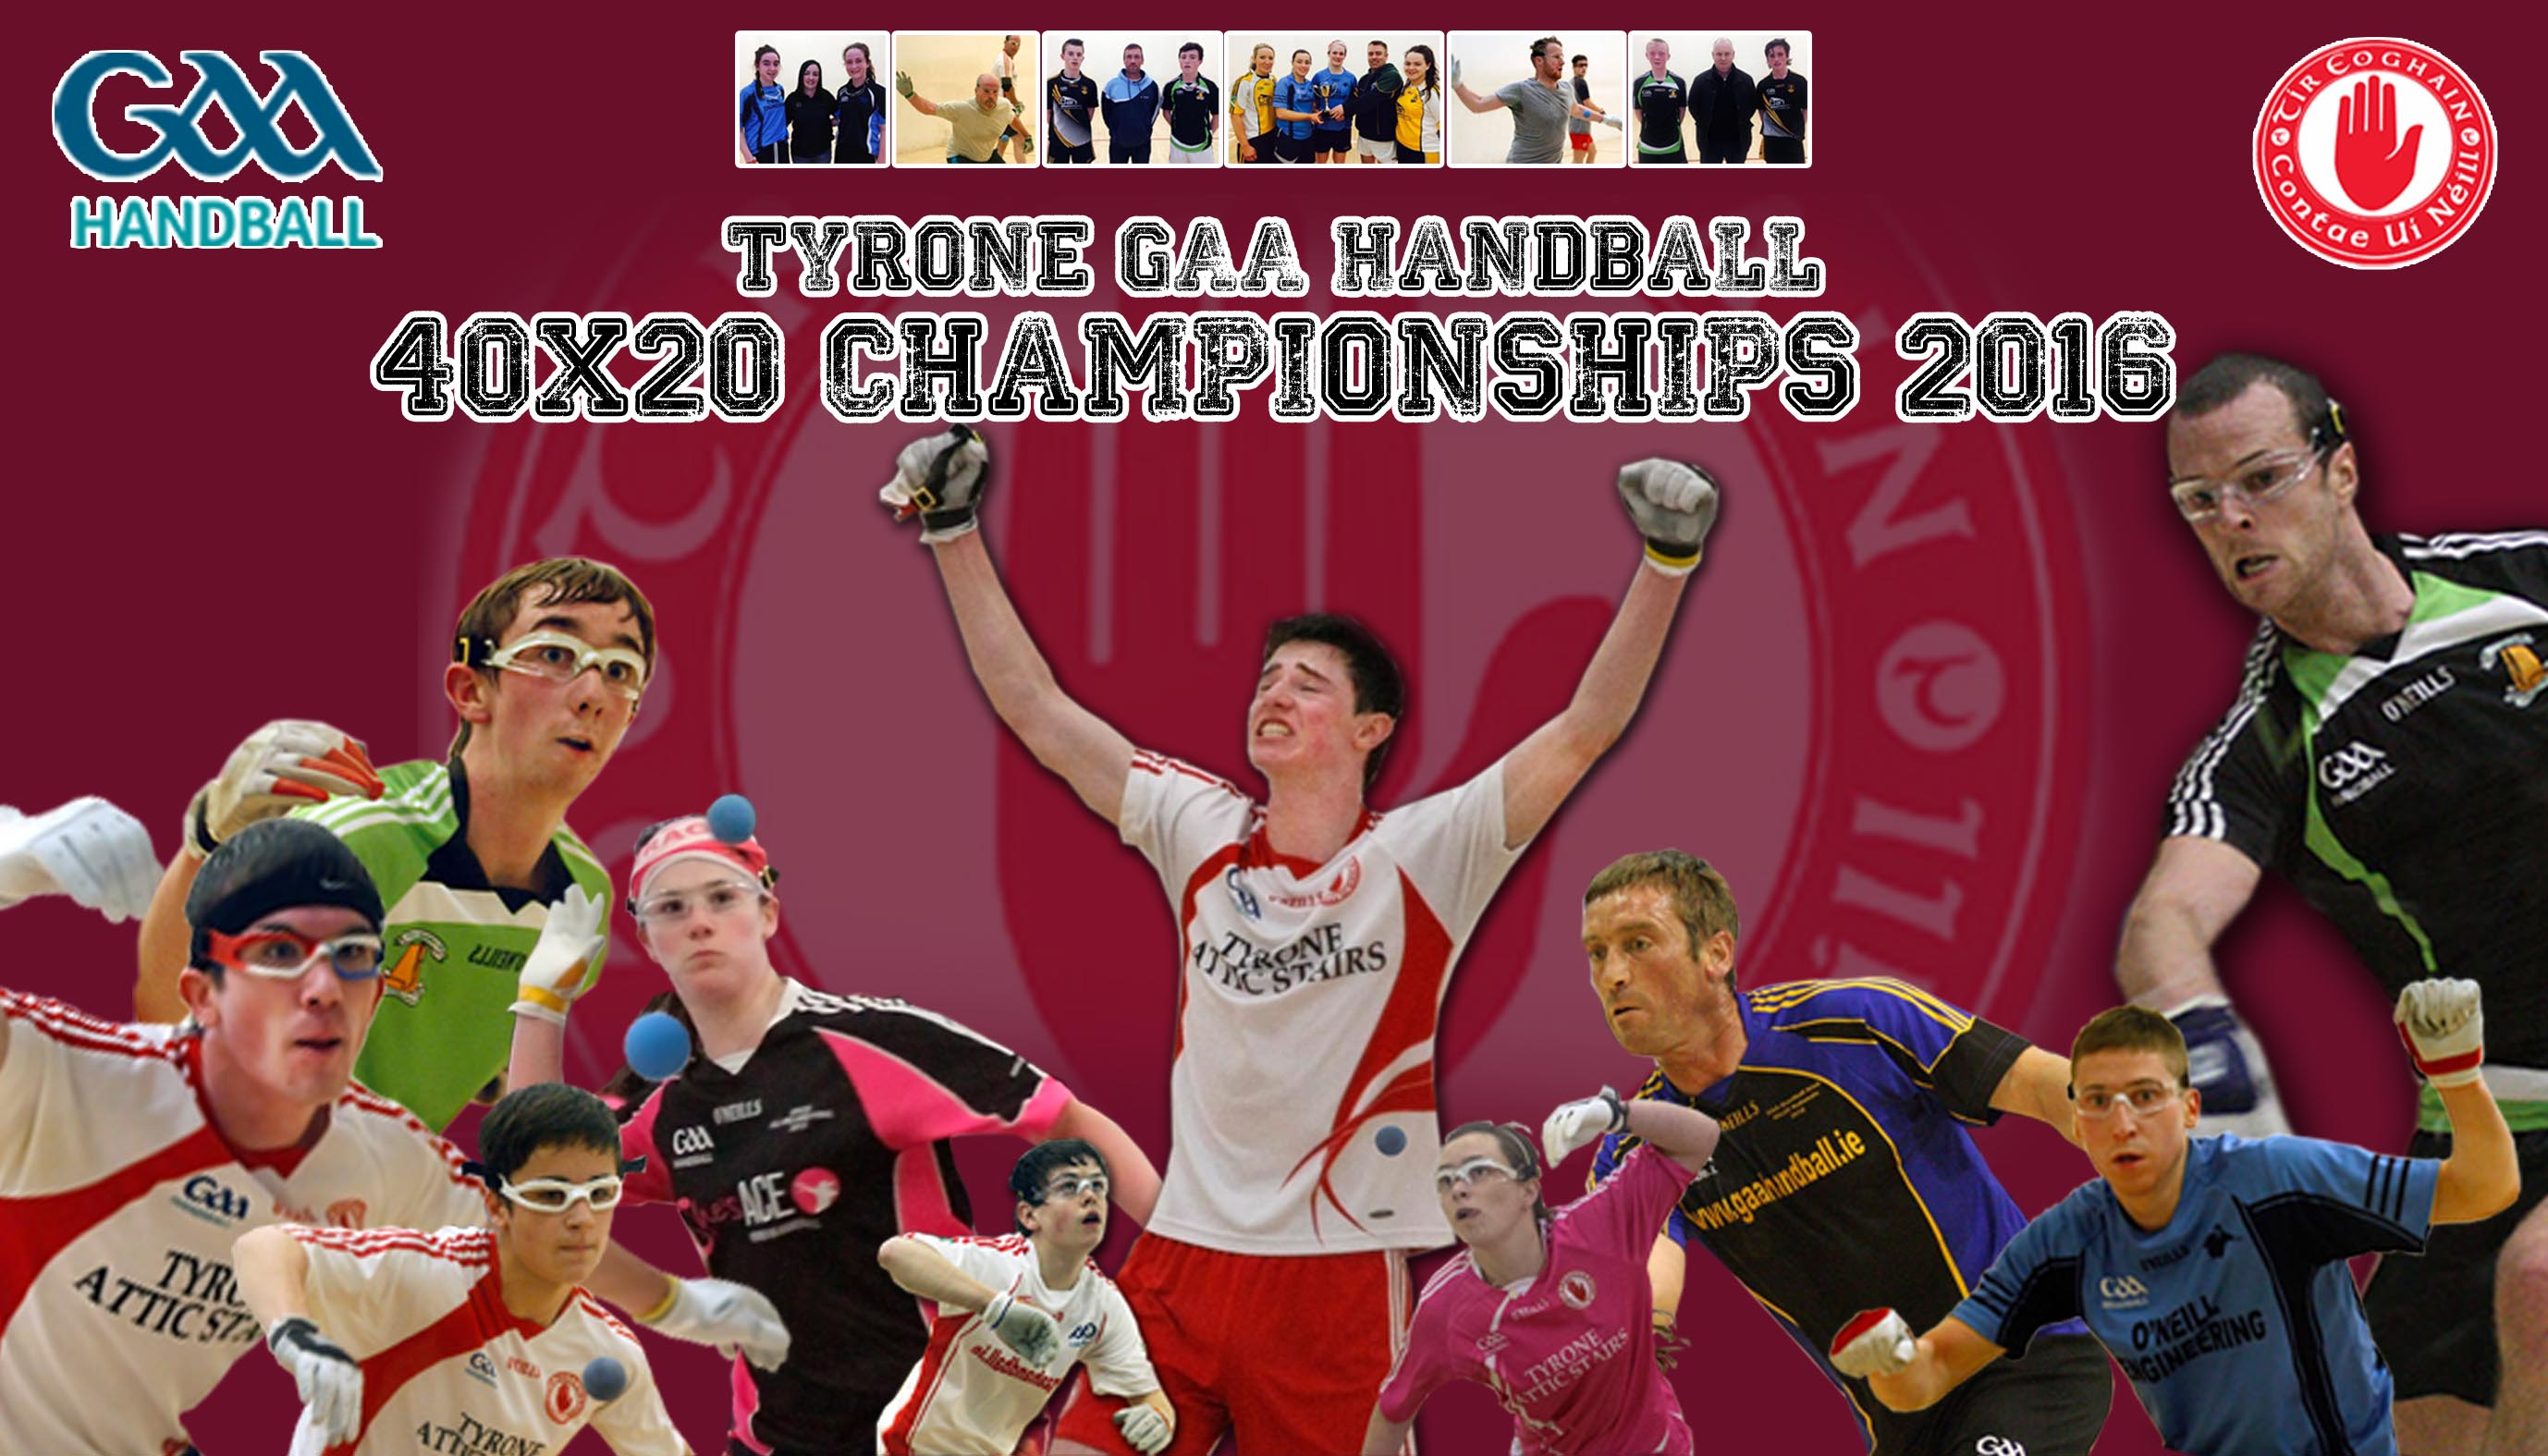 Tyrone Handball Update